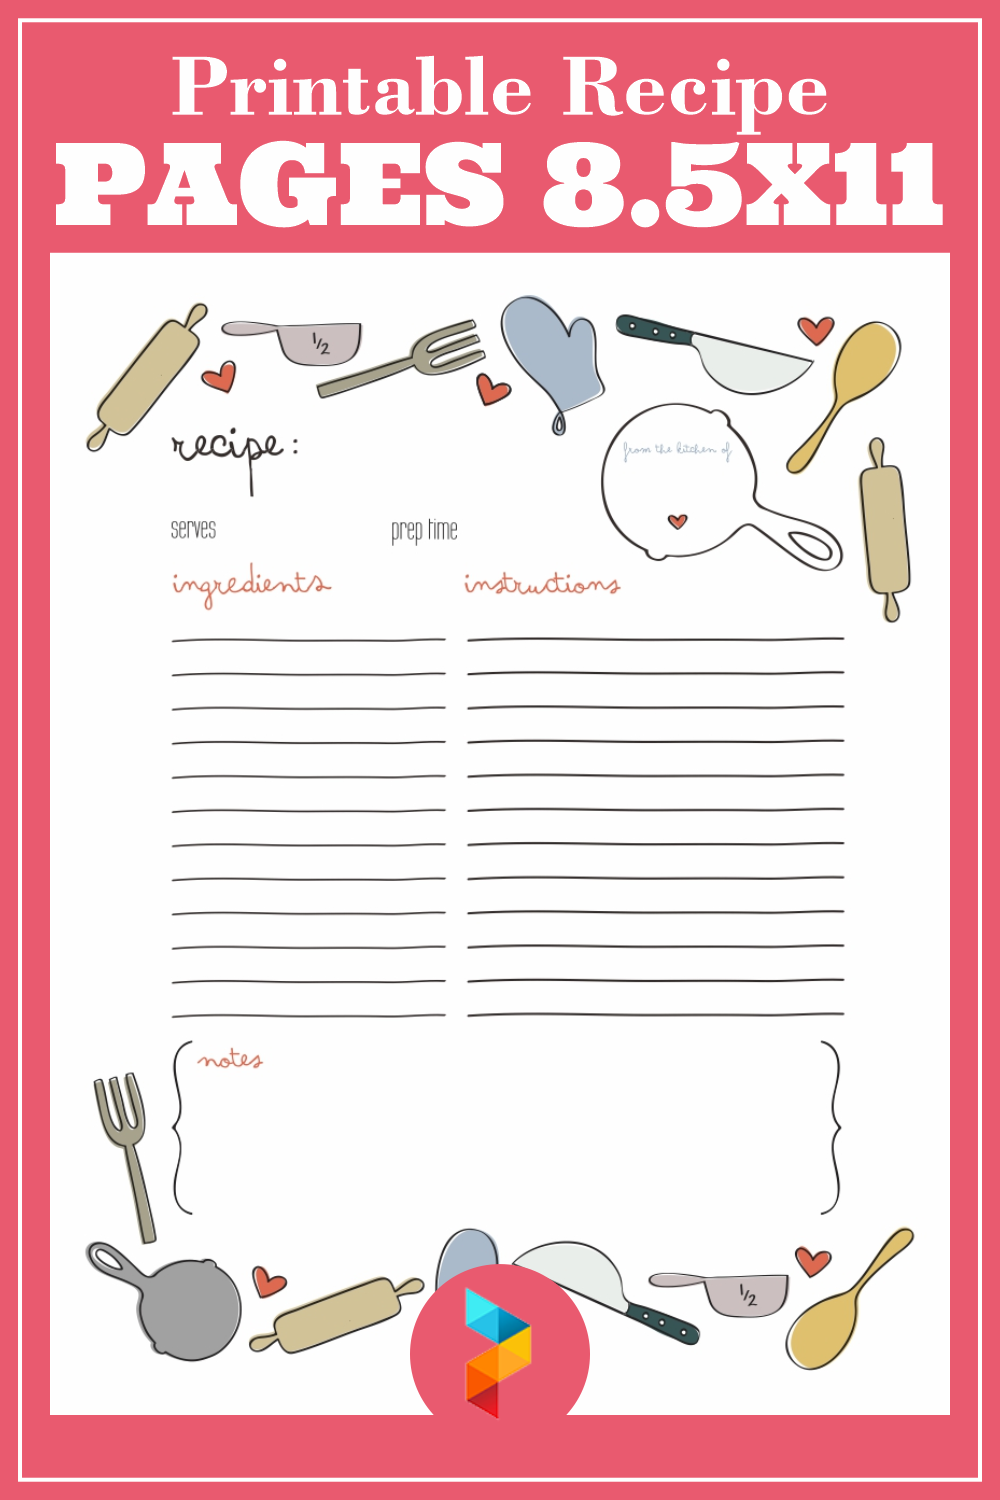 Printable Recipe Pages 8.5X11